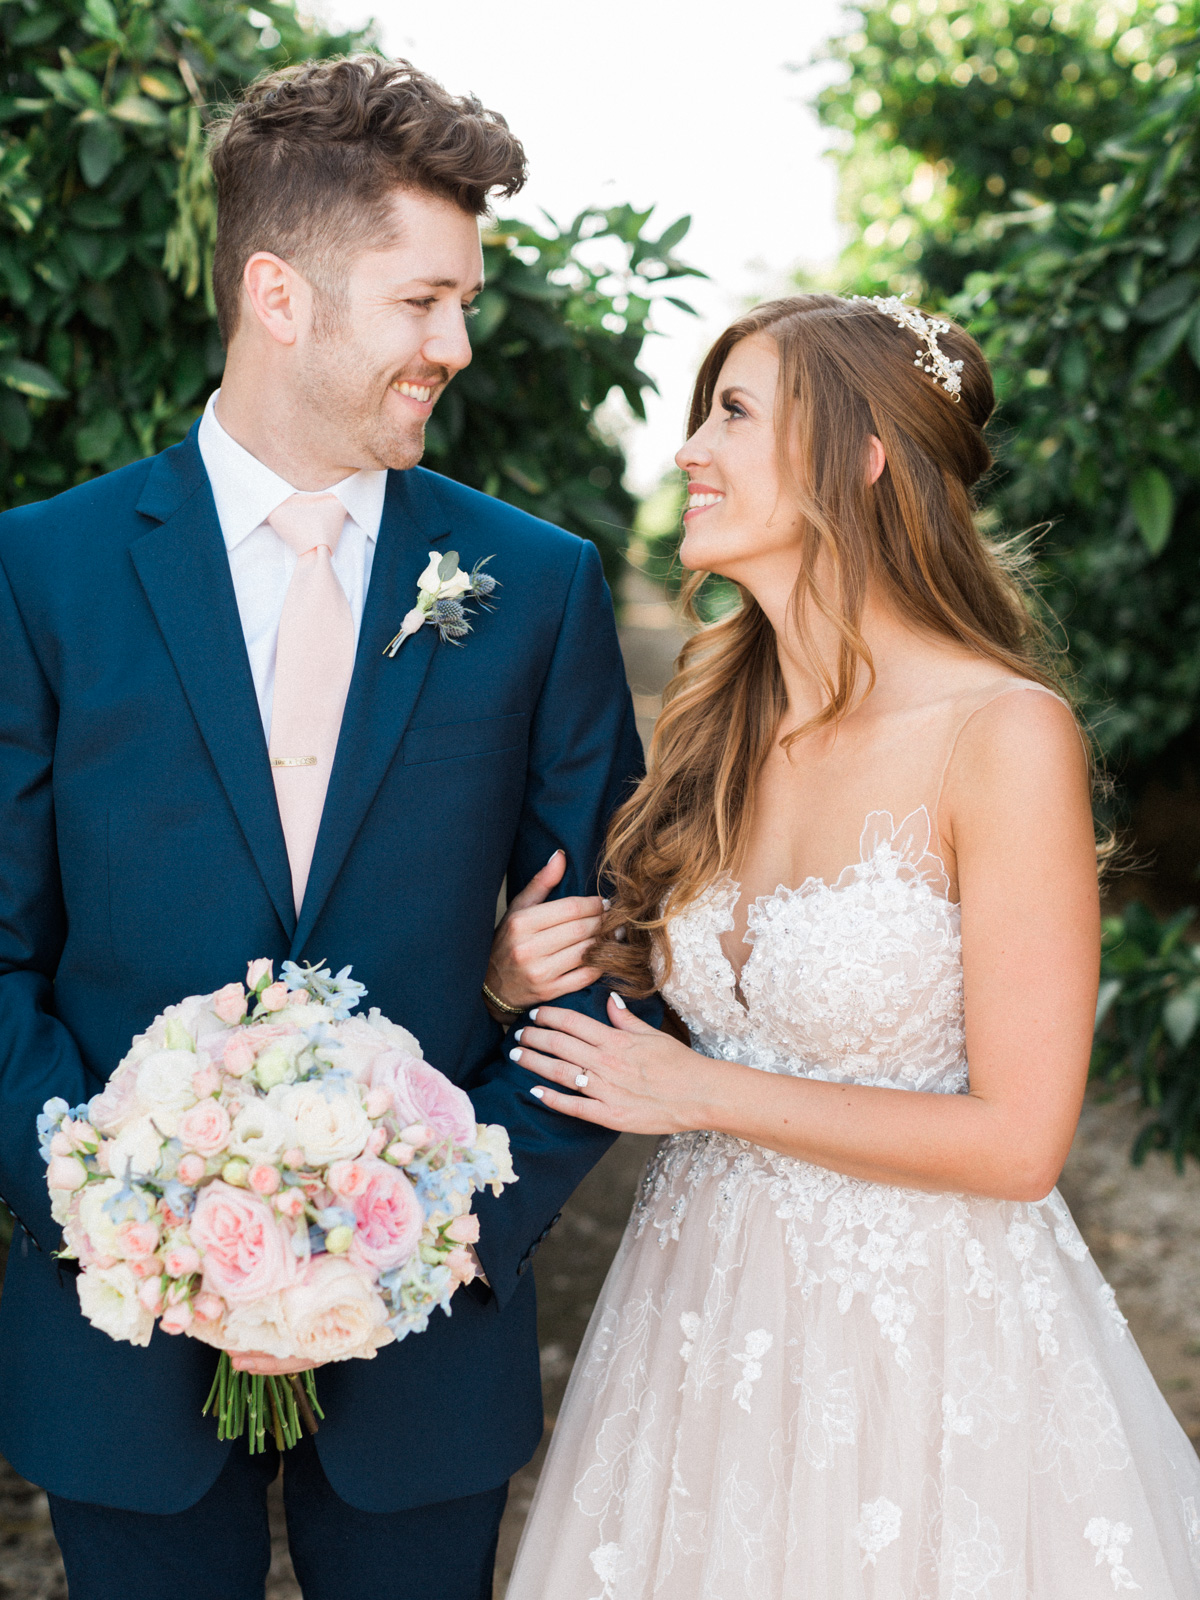 Harrison & Jocelyne's gorgeous Temecula wedding at Wiens Family Cellars captured by Betsy & John Photography | Temecula Film Photographers